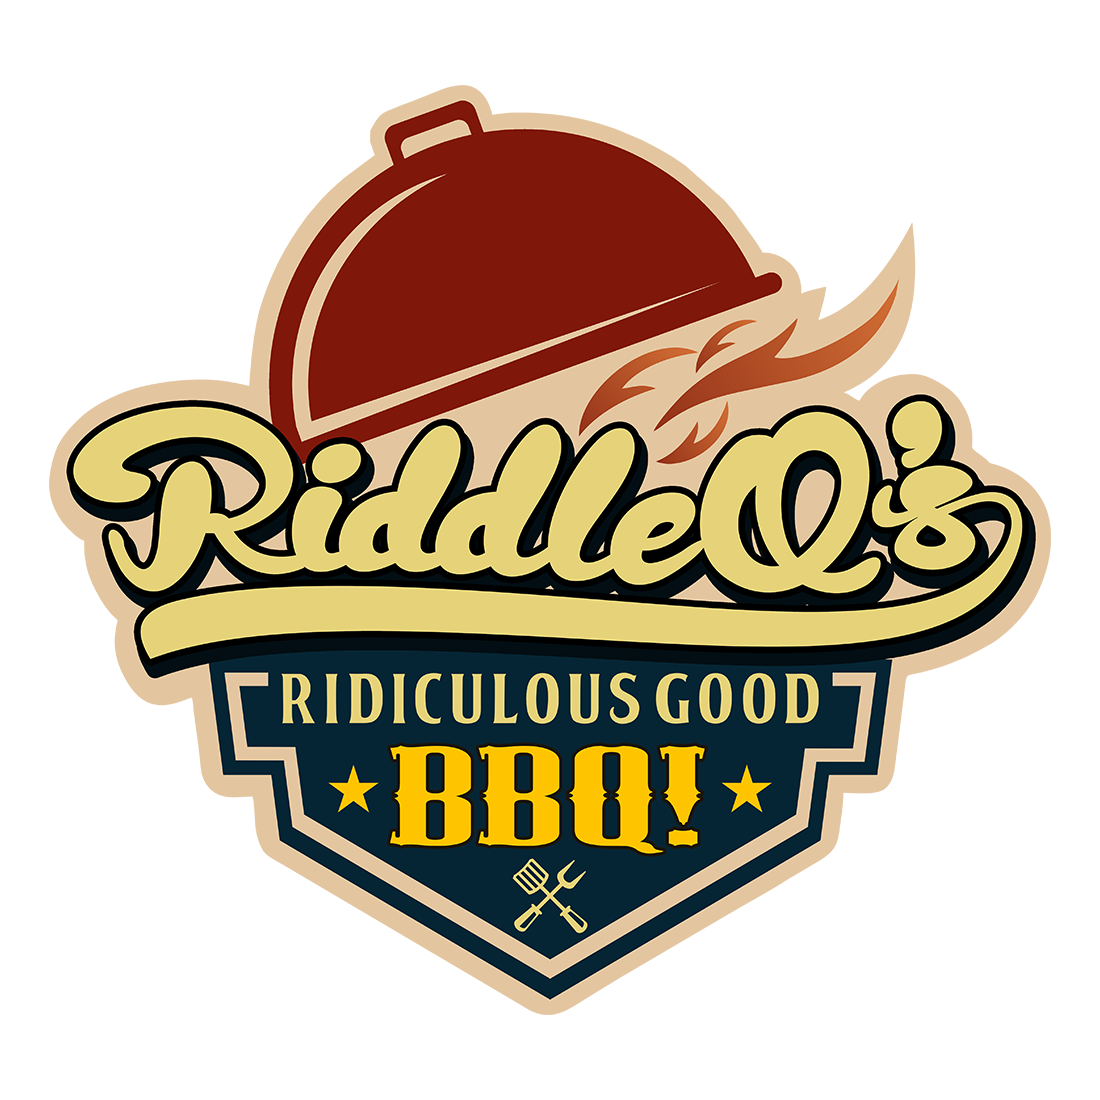 RiddleQ's - Ridiculous Good BBQ